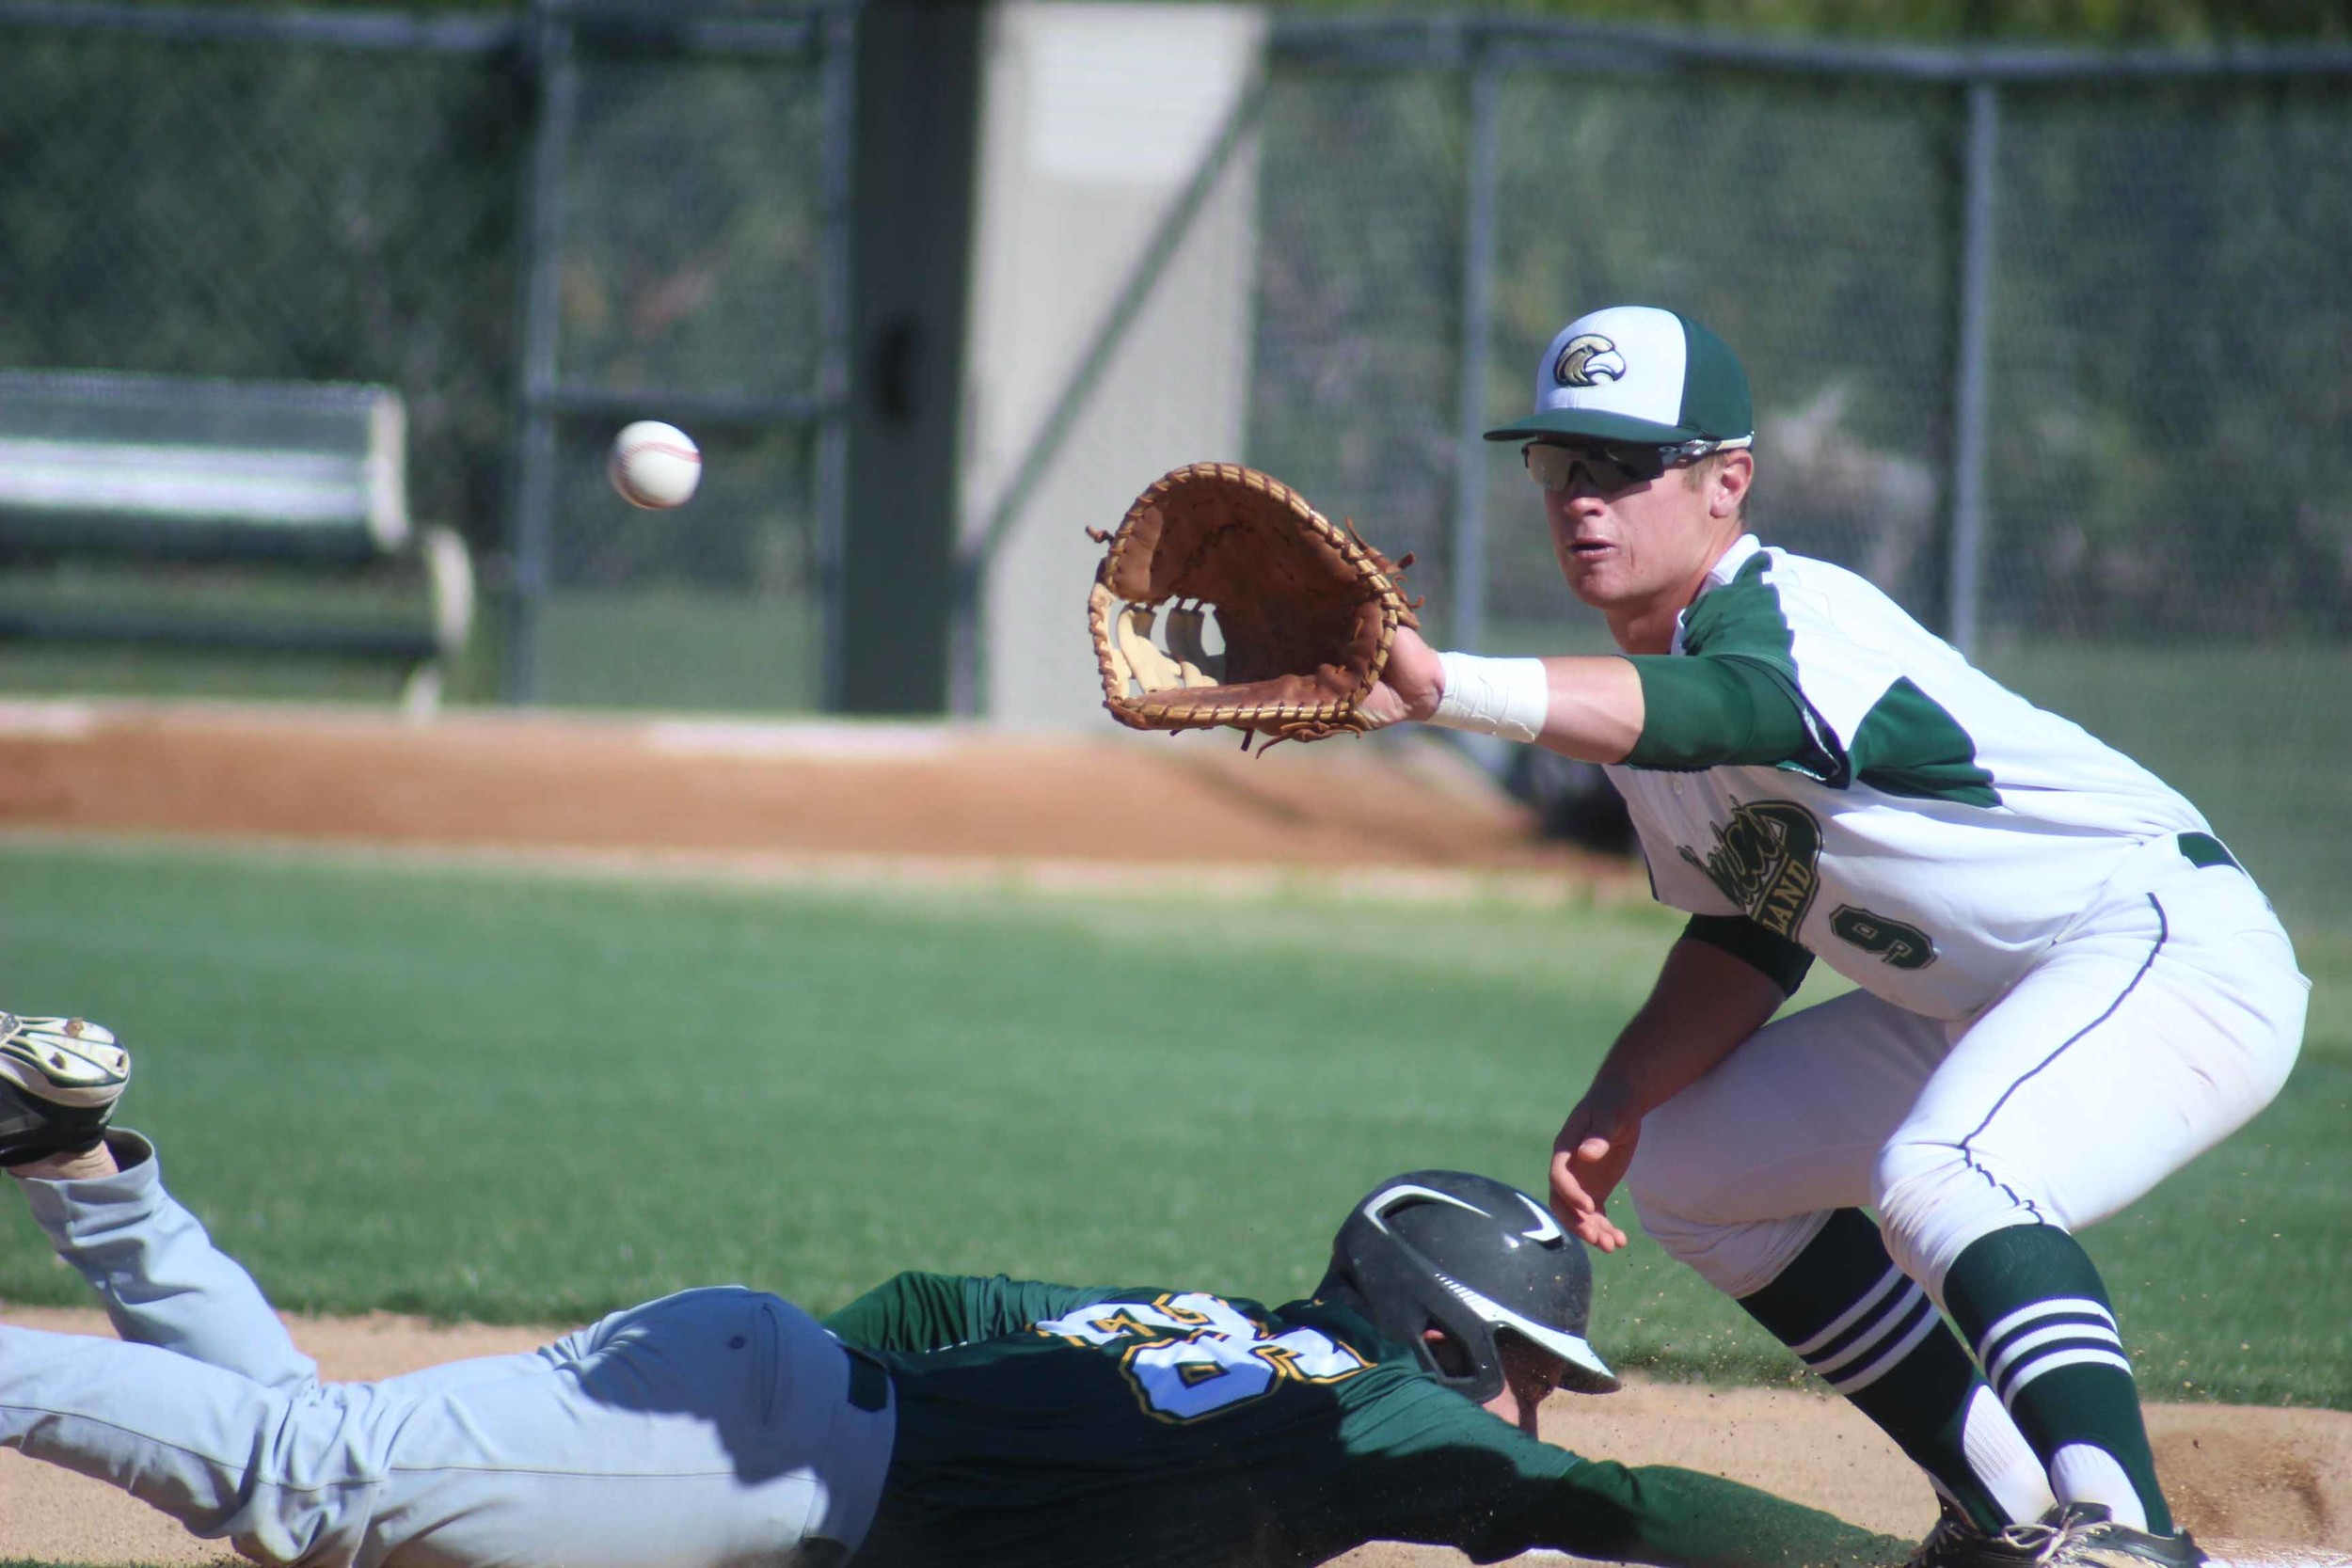 Fleming Island High first baseman Matt Whetstone awaits ball in pick off attempt in Golden Eagles 10-1 win over Yulee on Mon., March 21. Eagles go on the road to take on three returning regional teams; Chiles, North Florida Christian and Creekside.